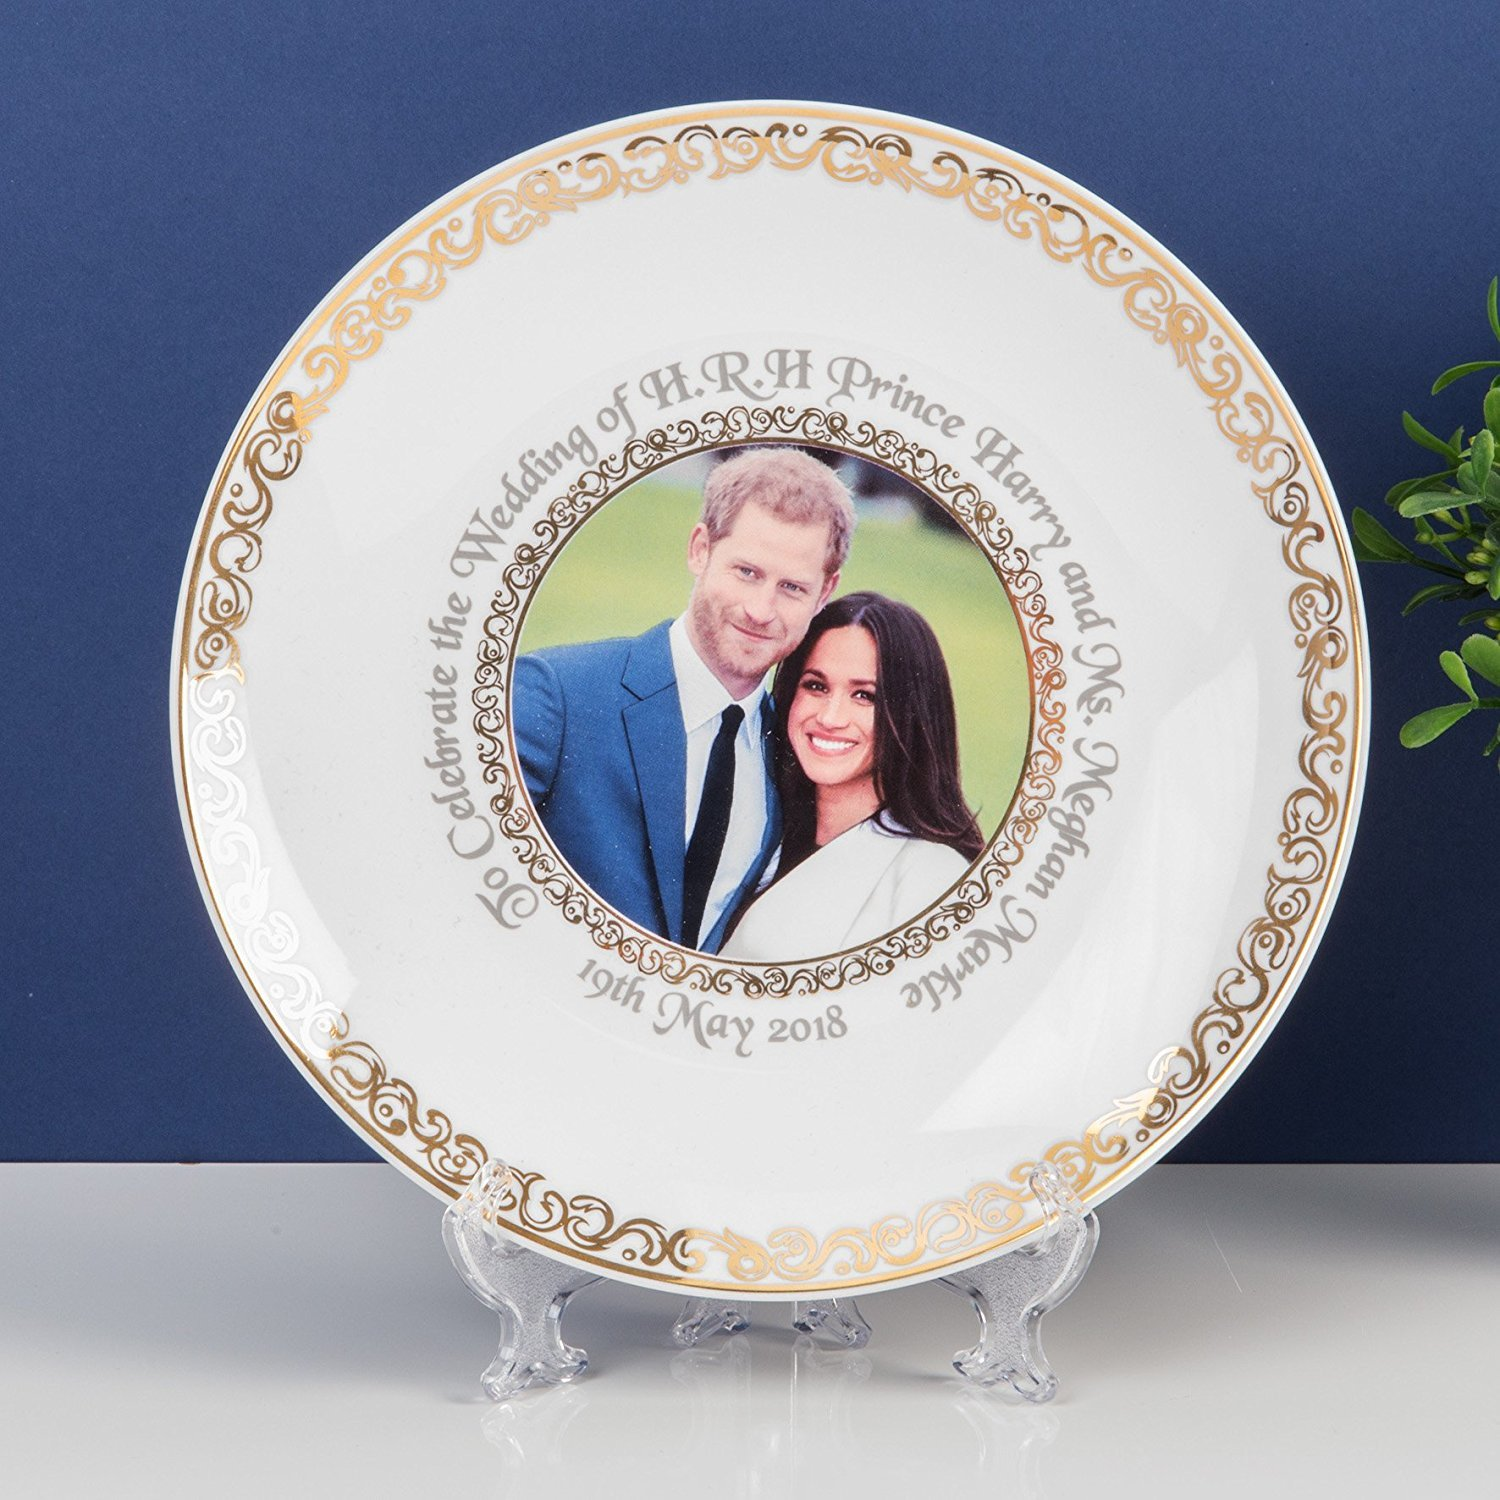 Royal Wedding New Bone China Plate to Commemorate the Marriage of HRH Prince Harry to Meghan Markle